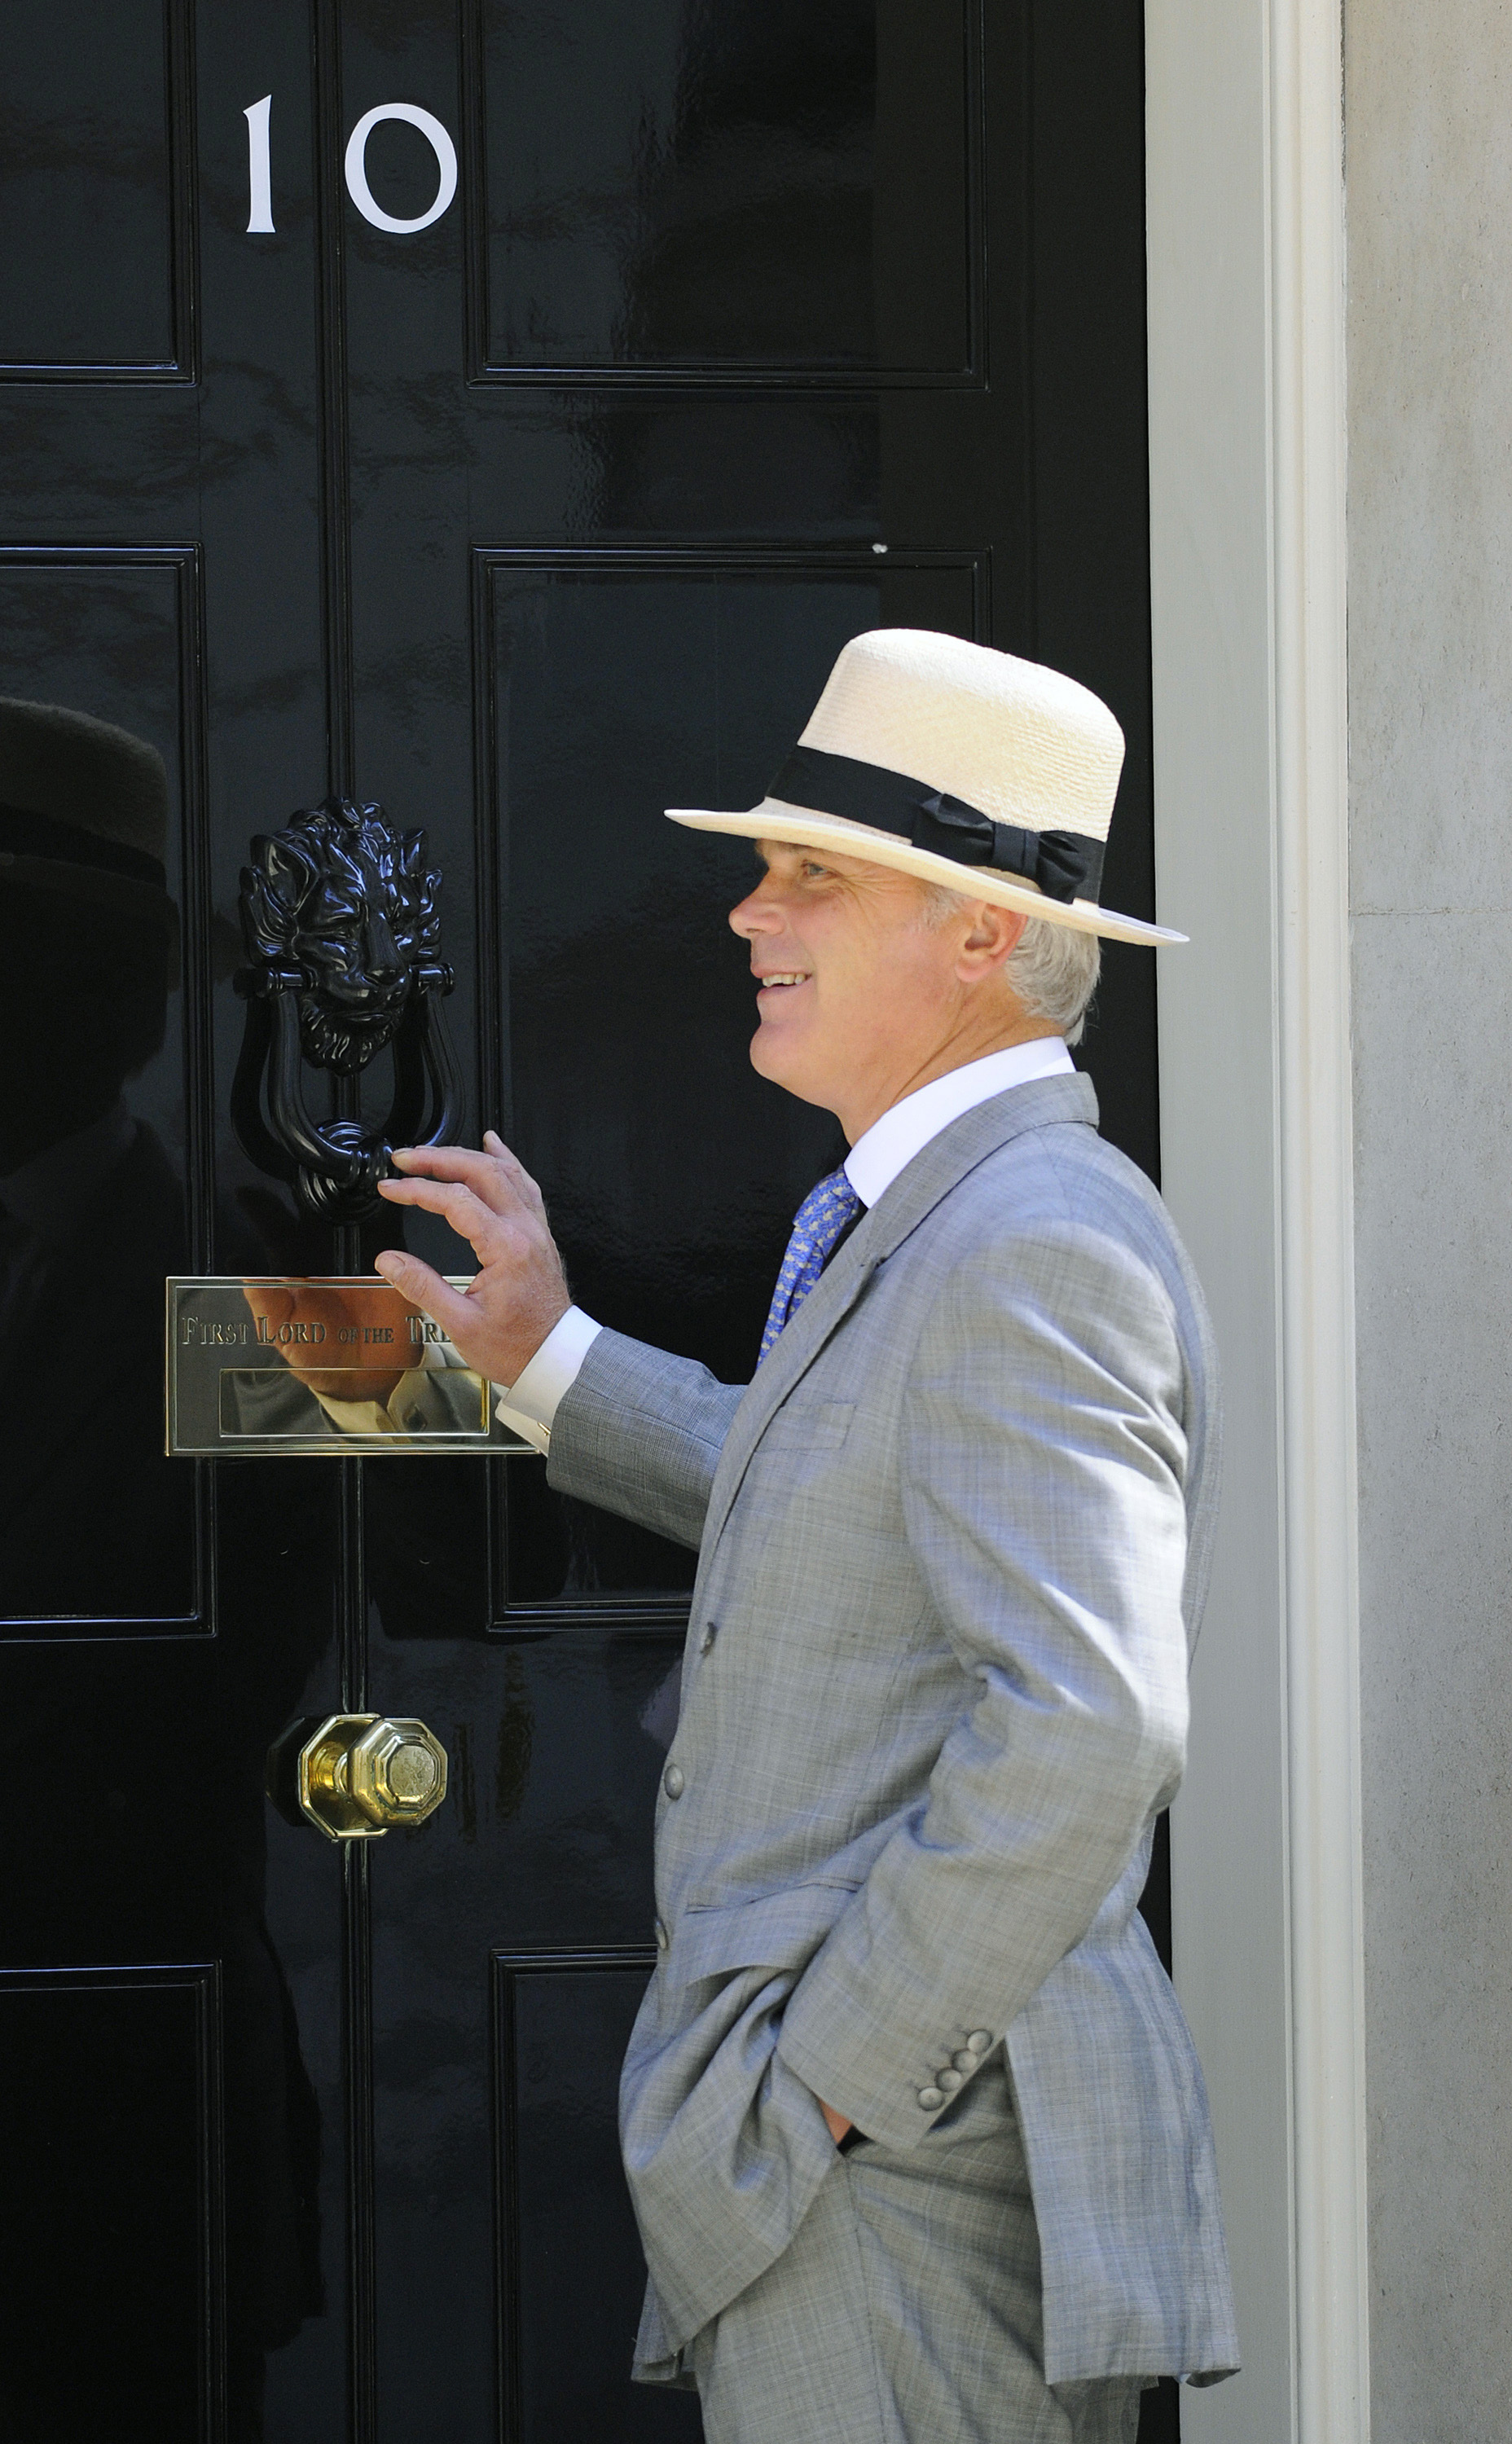 British Conservative Party MP Desmond Swayne arrives before a cabinet meeting at Number 10 Downing Street in London June 3 2010. REUTERS/Toby Melville (BRITAIN - Tags: POLITICS)